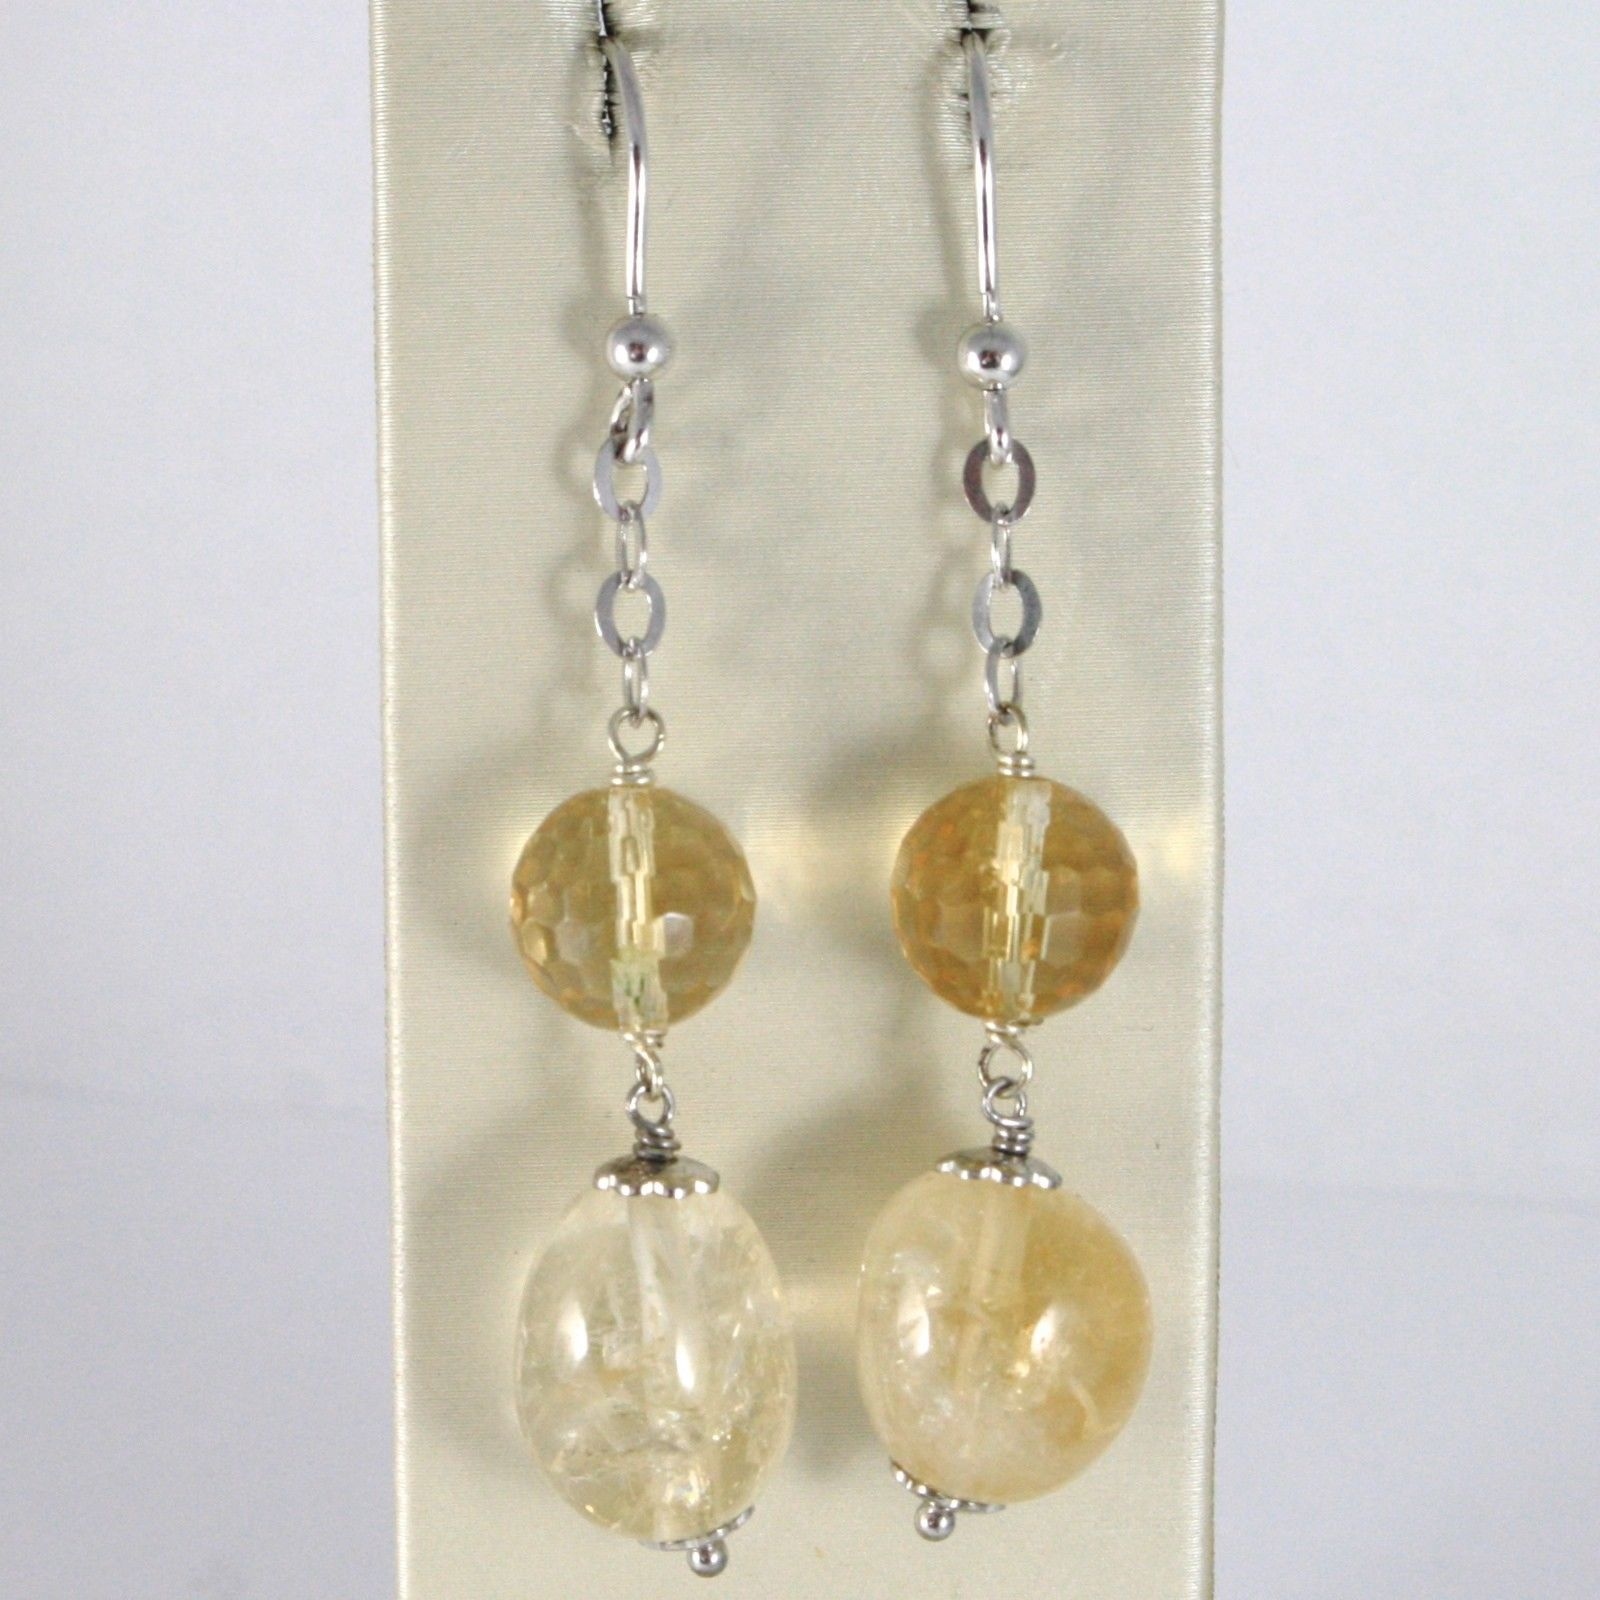 EARRINGS SILVER 925 TRIED AND TESTED HANGING WITH QUARTZ CITRINE OVAL FACETED